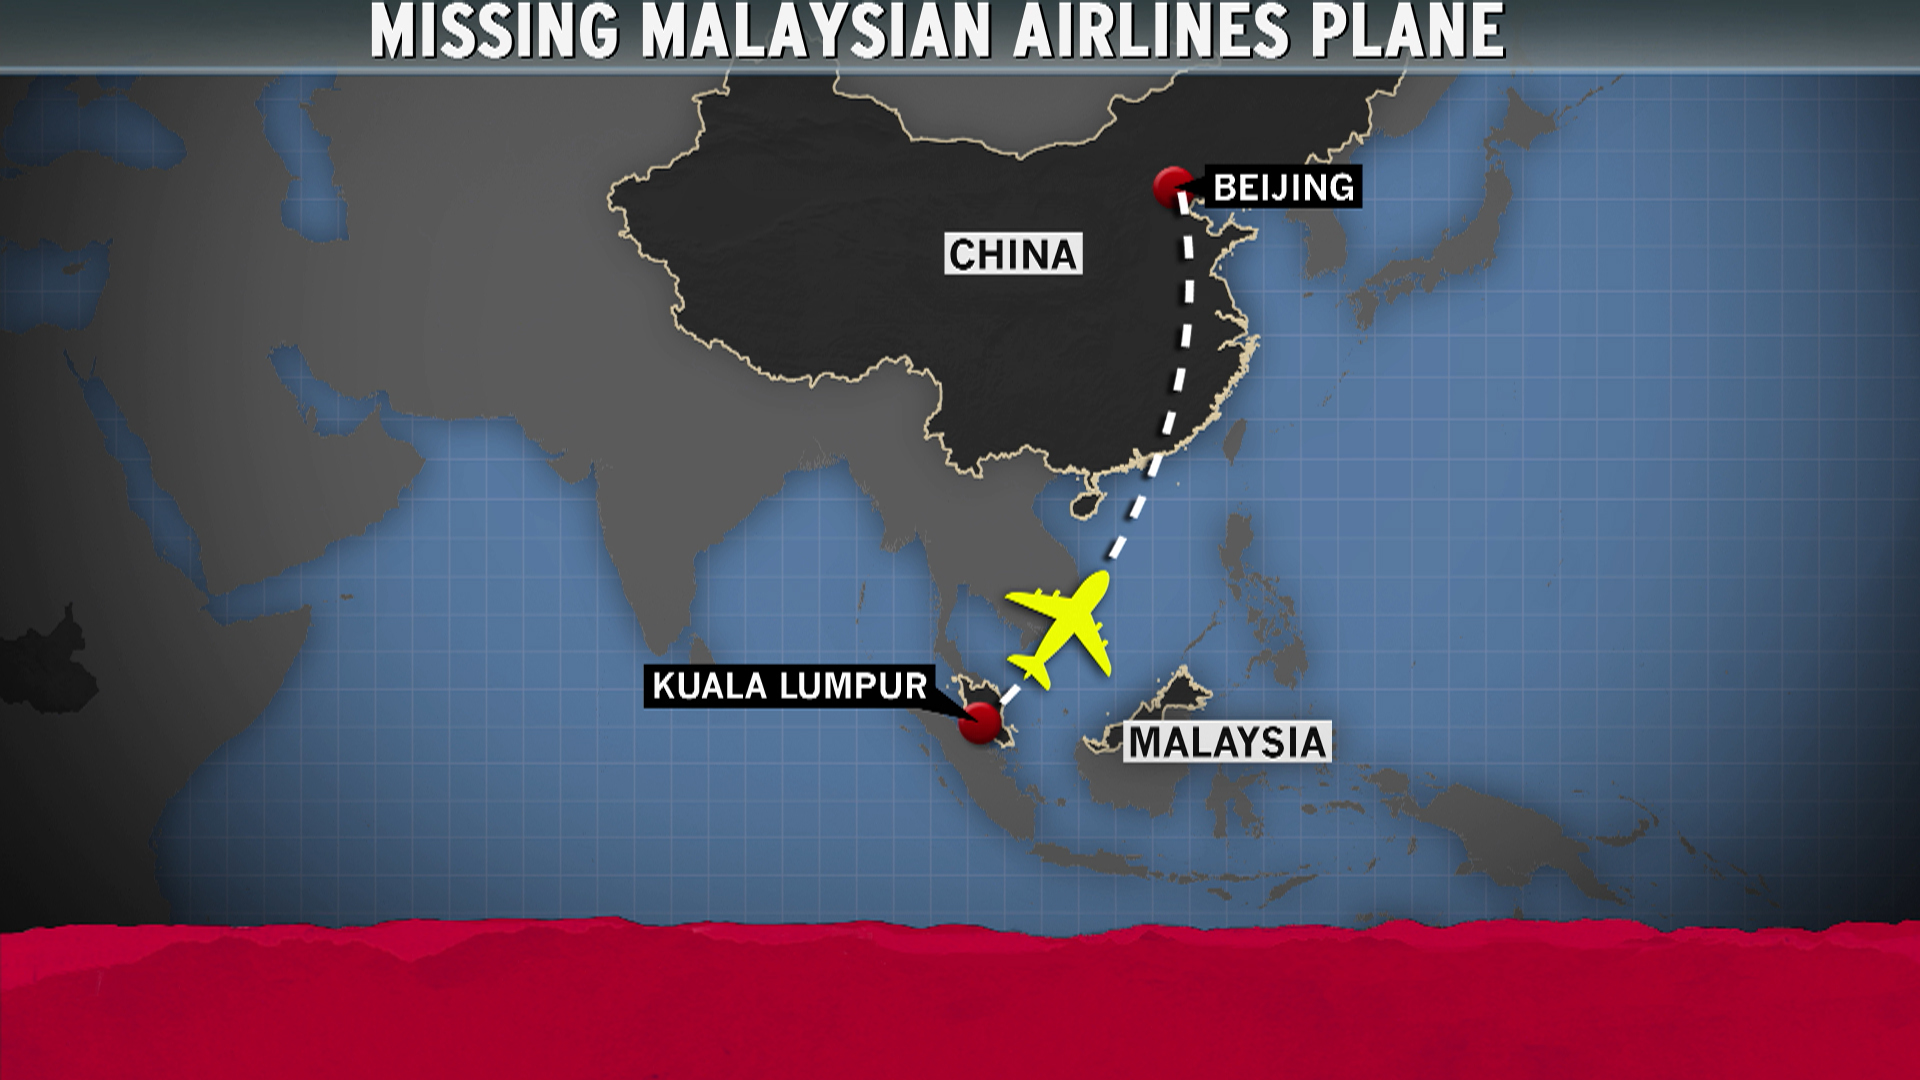 Plane loses contact en route to beijing gumiabroncs Choice Image